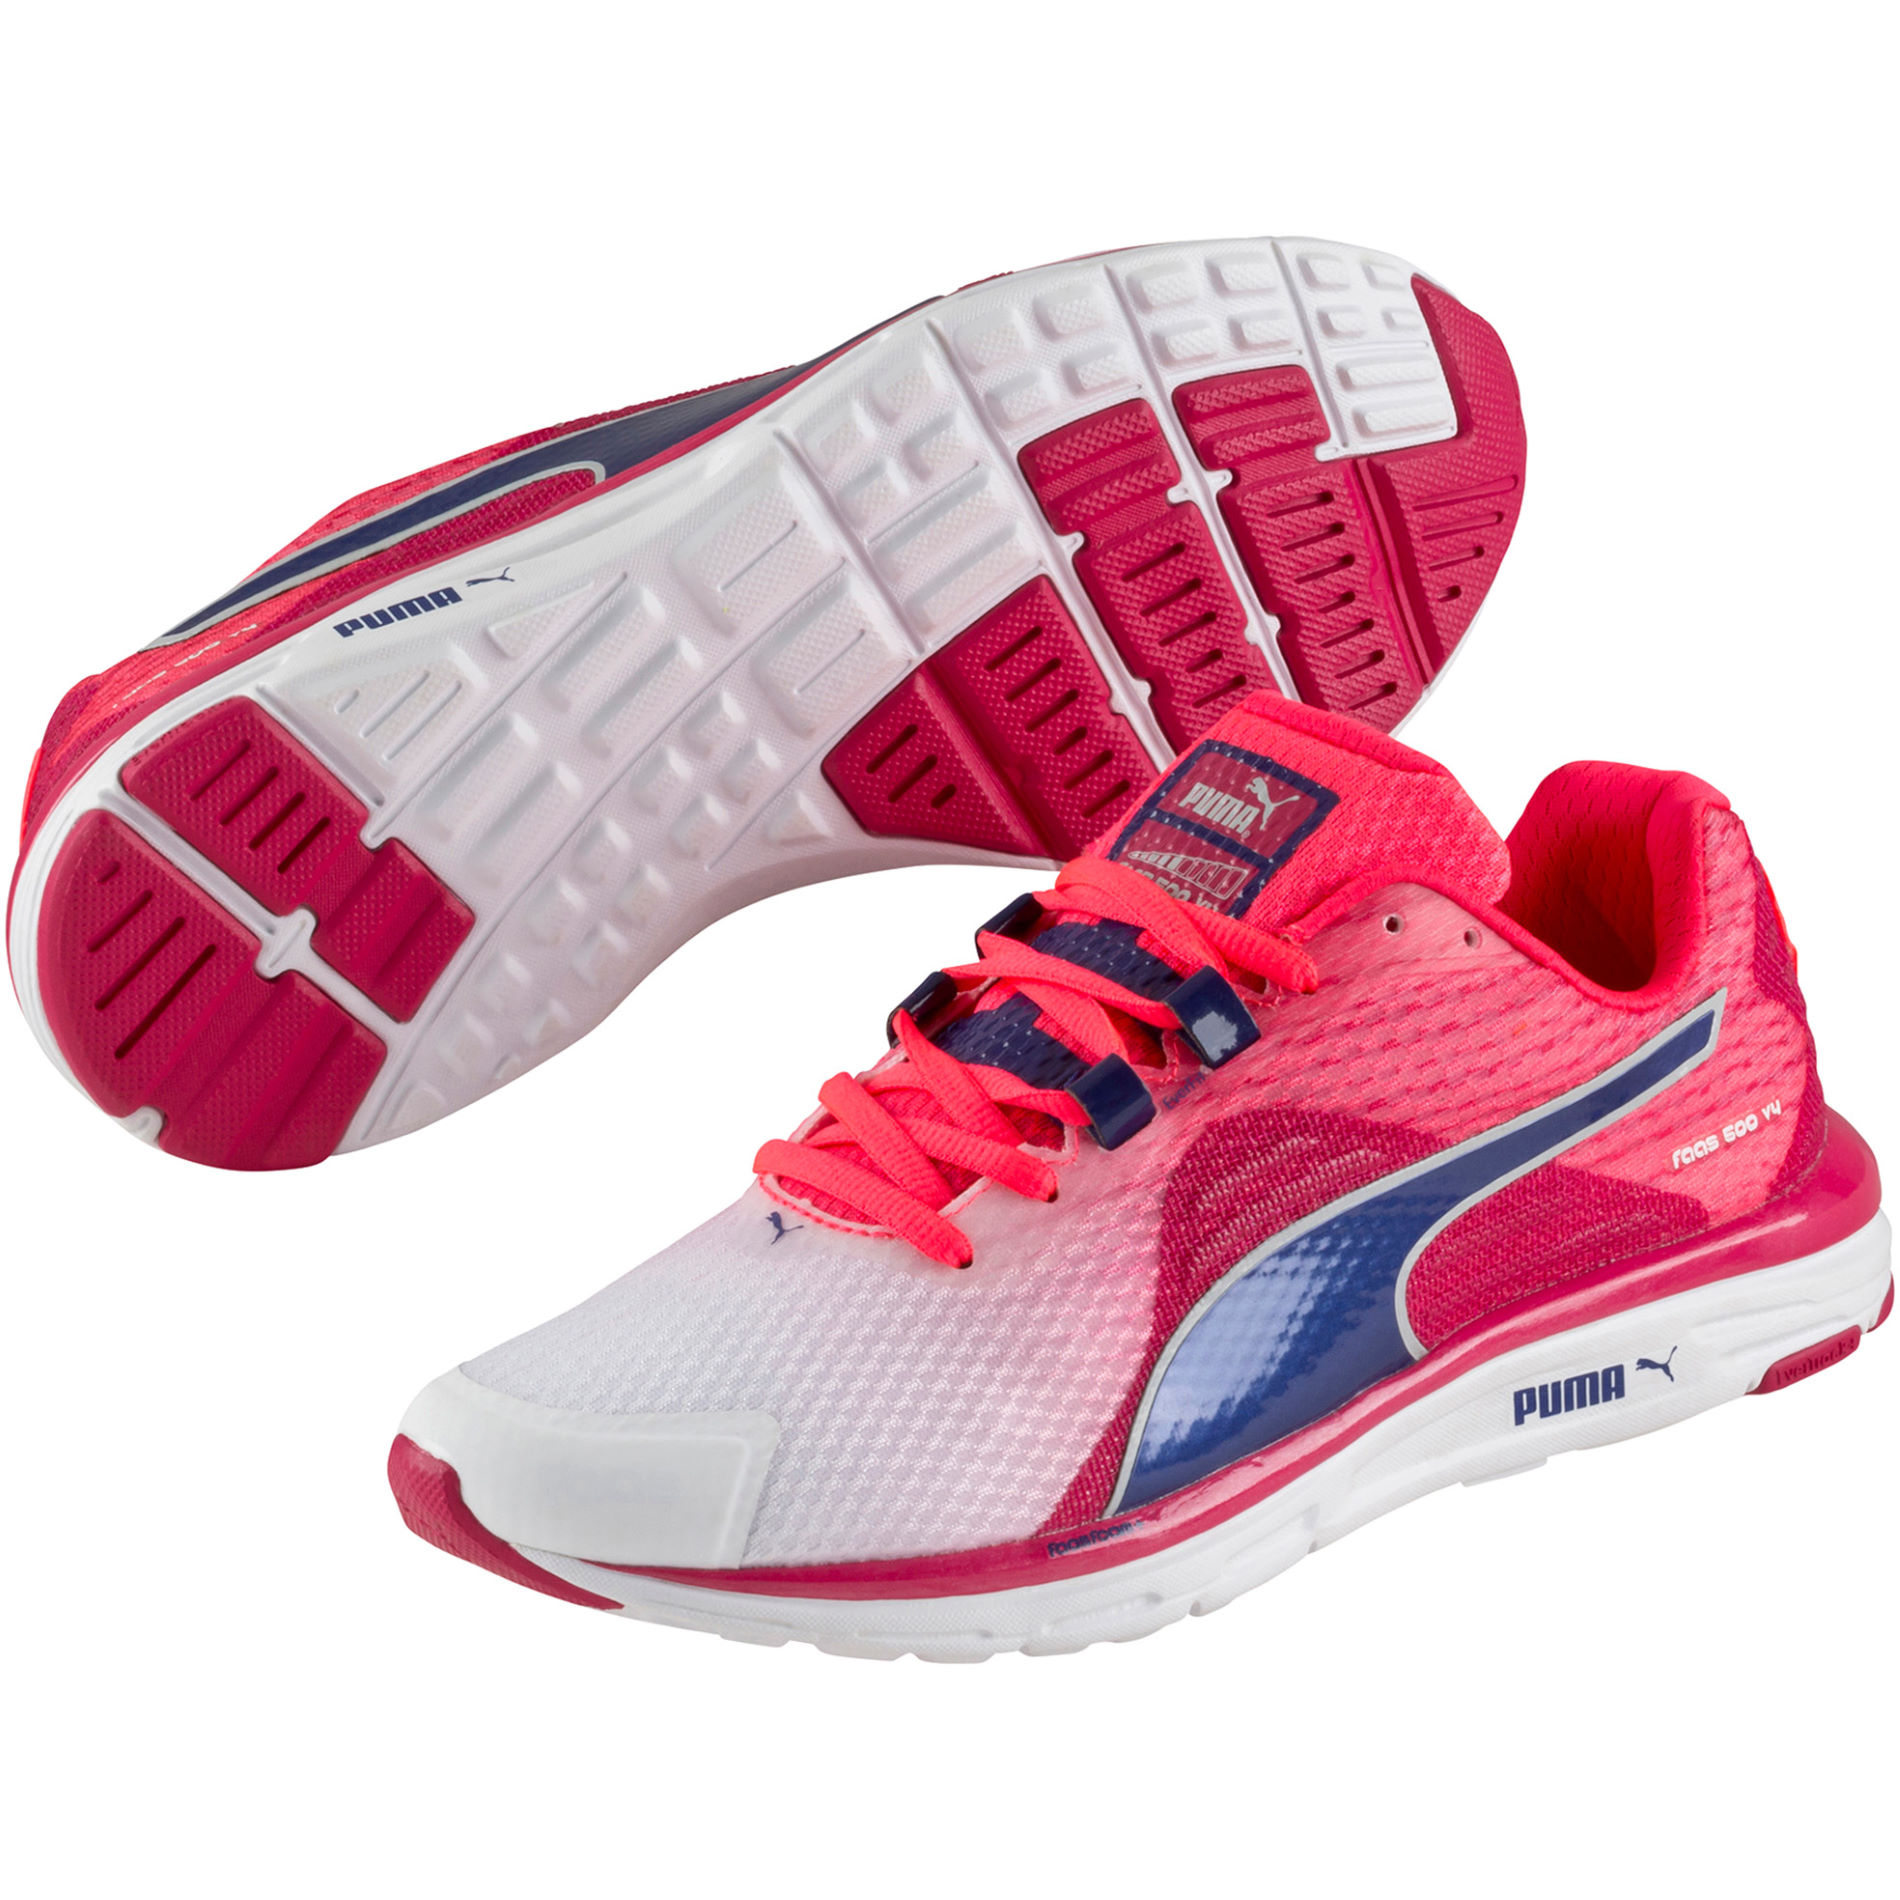 plus récent f9aea e2994 Wiggle Cycle To Work | Puma Women's Faas 500 V4 Shoes - SS15 ...